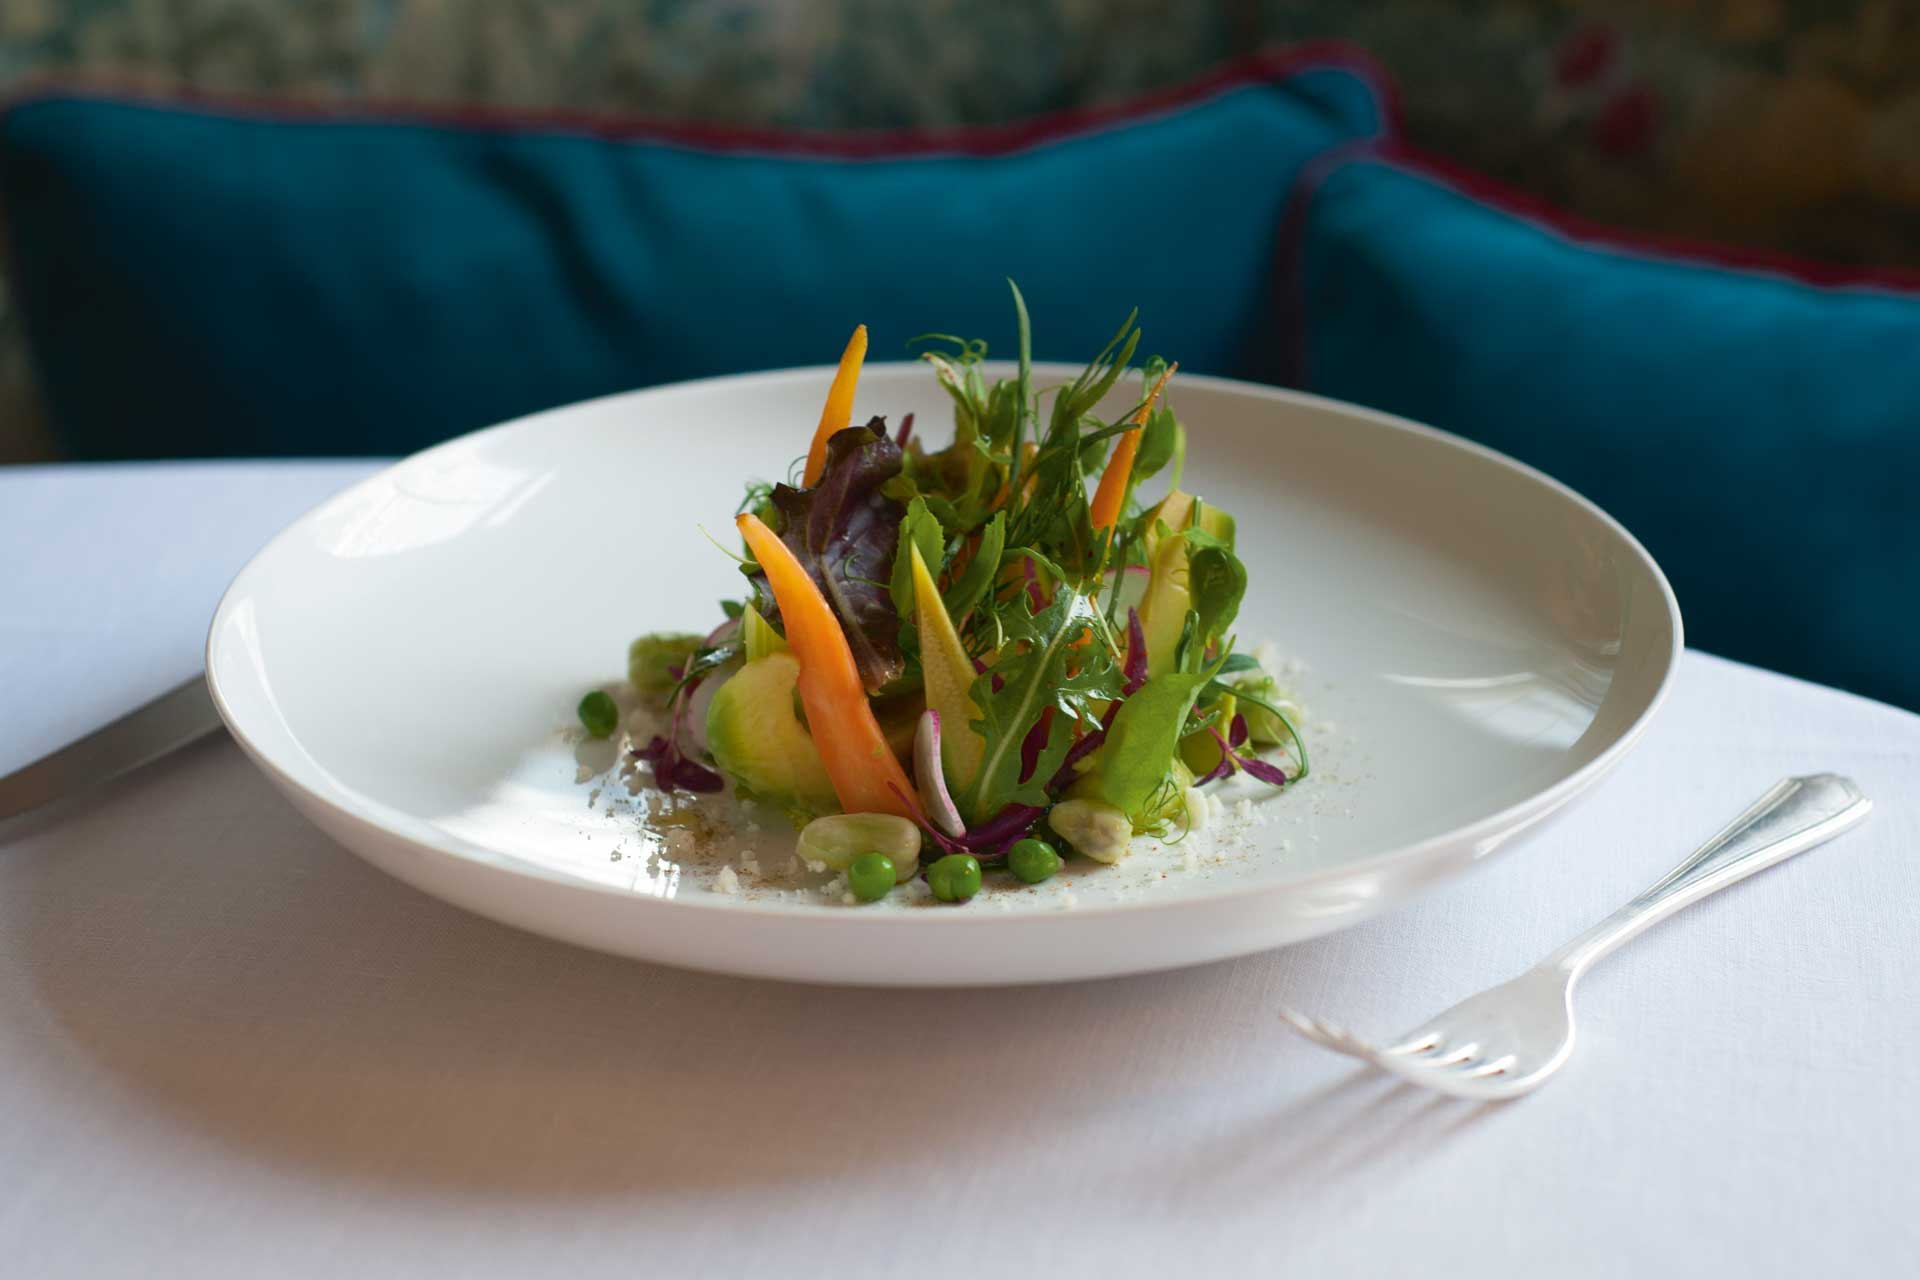 Summer vegetable salad with avocado, mixed seeds and pistachio pesto from Beck at Brown's